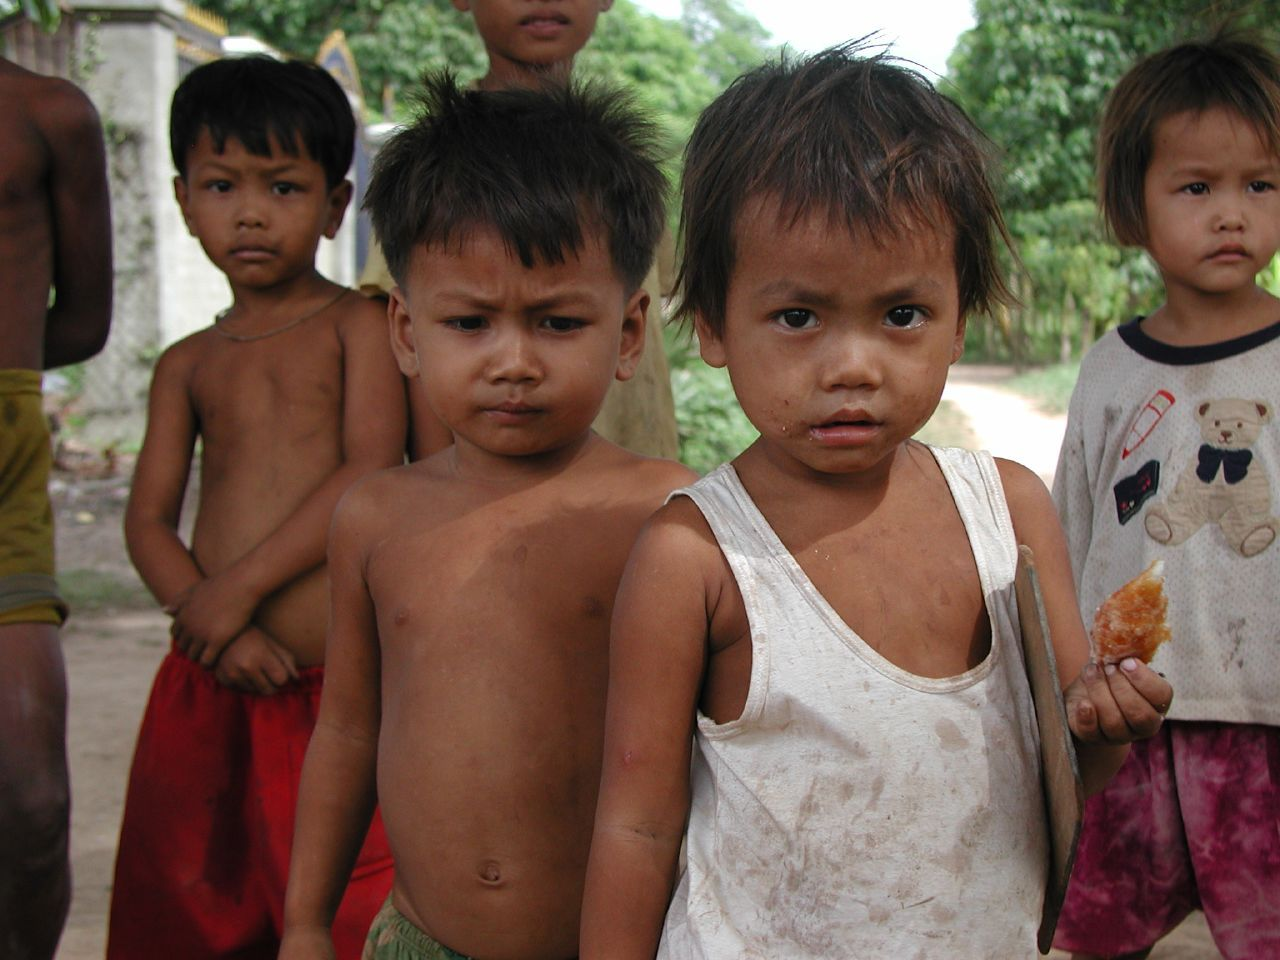 Cambodia child 17 Best images about Cambodia on Pinterest | Cost of living, Rural area and  Secondary schools